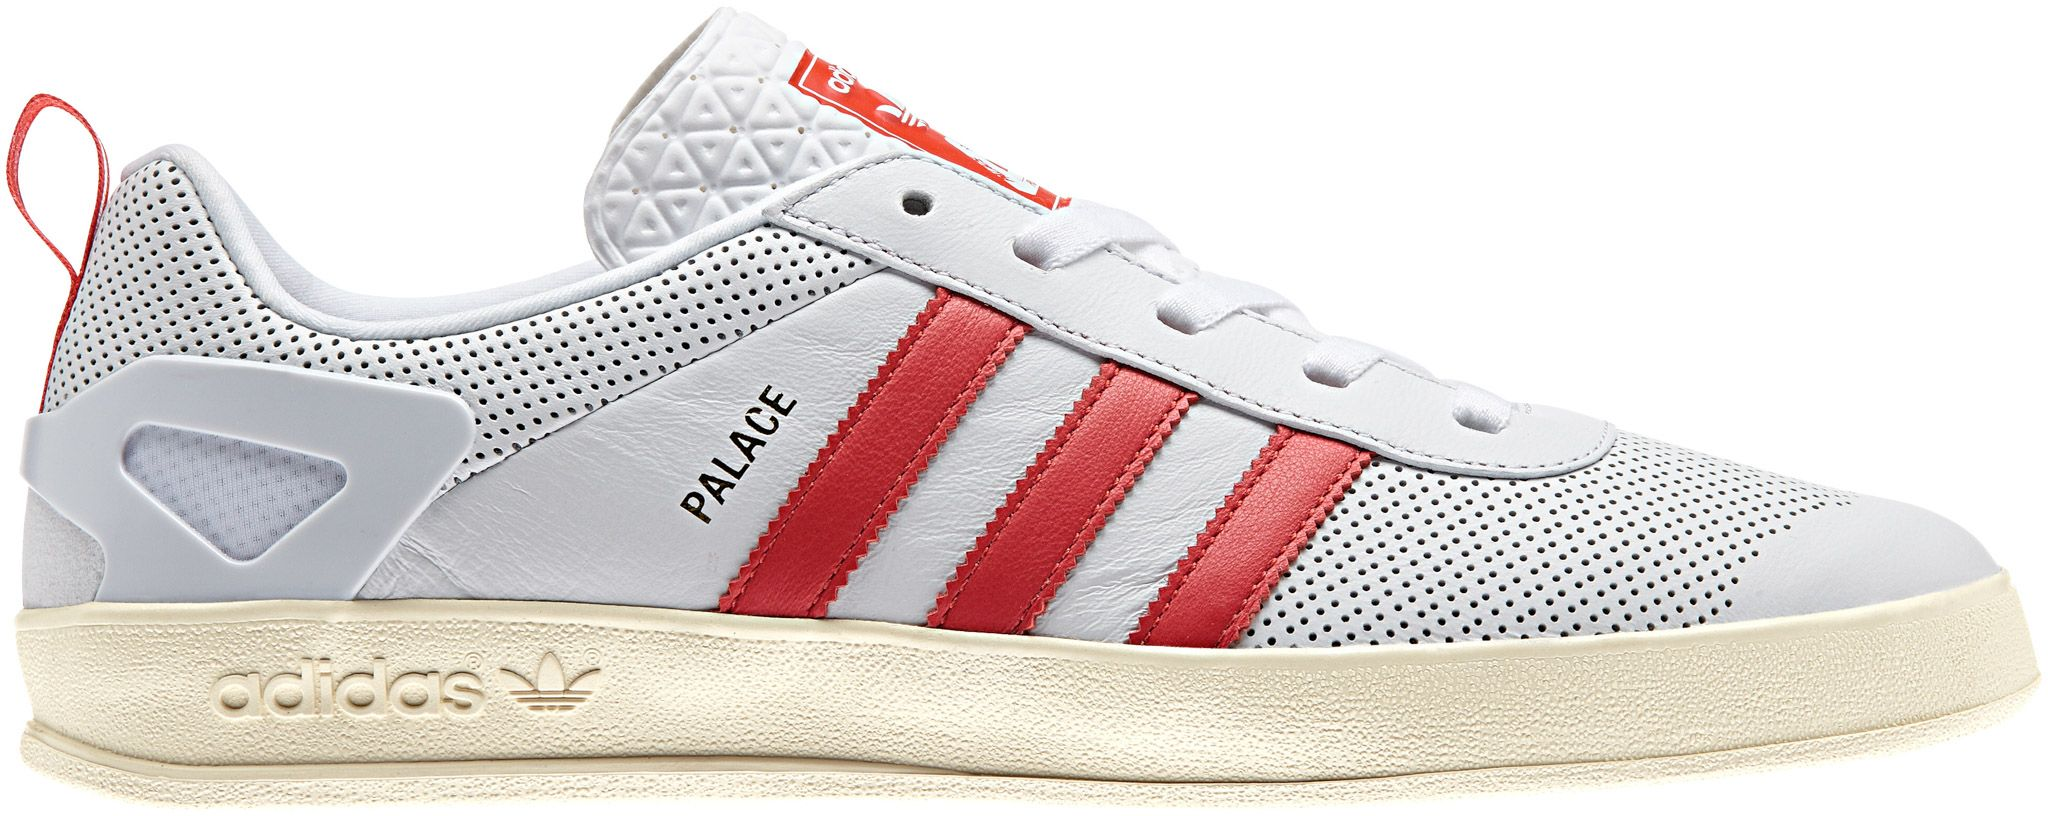 PALACE adidas Originals – x Winter Fall 20152015 08Nmvnw